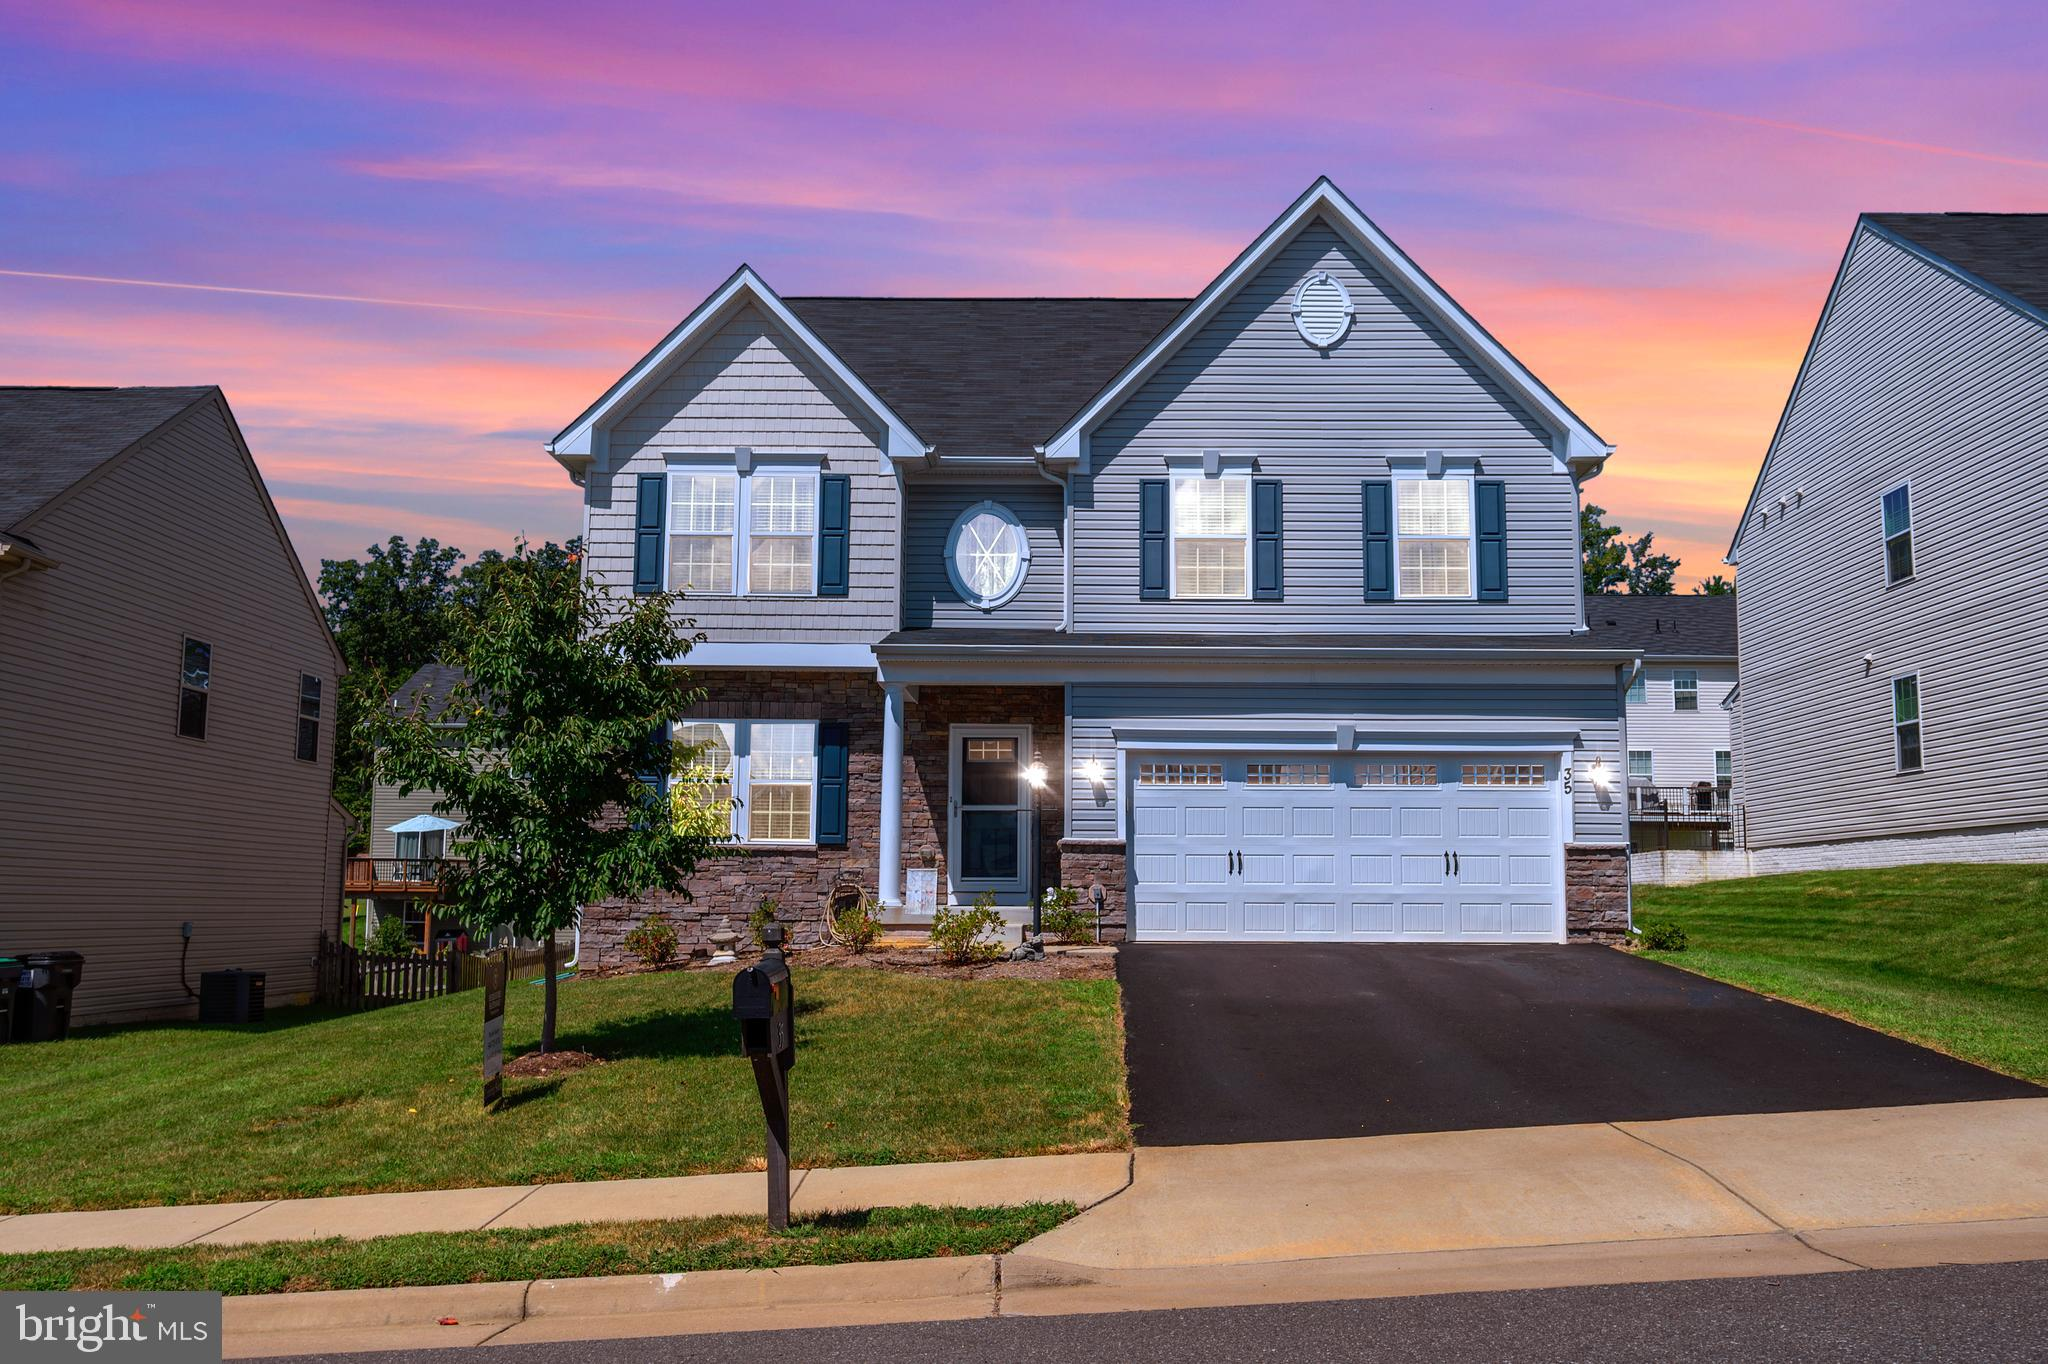 Welcome home.  This gorgeous 4 bedroom, 3.5 bath colonial has over 4200sf of living space with plenty of room for friends and family.  This one-owner home has been meticulously maintained and is located in the sought after community of Southgate.  Step inside and be greeted with gleaming hardwood floors, a gourmet kitchen that offers a massive center island and beautiful granite countertops.  The main level also boasts a formal sitting room, dining, a sun room addition, a large family room, and a office/library room - perfect for teleworking!  The upper level includes four bedrooms, two full baths, convenient upstairs laundry, and a second loft/family area that would be perfect for homeschooling, a playroom, or recreation area.  The spacious master suite with sitting area includes a beautiful master bath, and TWO walk-in closets is what every homeowner desires.  Fully Finished walk-up basement features full bath, a possible 5th bedroom (NTC), large Recreation Area perfect for Entertaining, and Plenty of storage!  Top it off with a nicely landscaped yard, inground sprinkler system, and a shed to help keep the spacious two-car garage tidy... this home is MOVE IN READY, INSIDE AND OUT!!  Not to forget it's just 5 minutes from the VRE, major commuter routes, shopping, dining, and more!